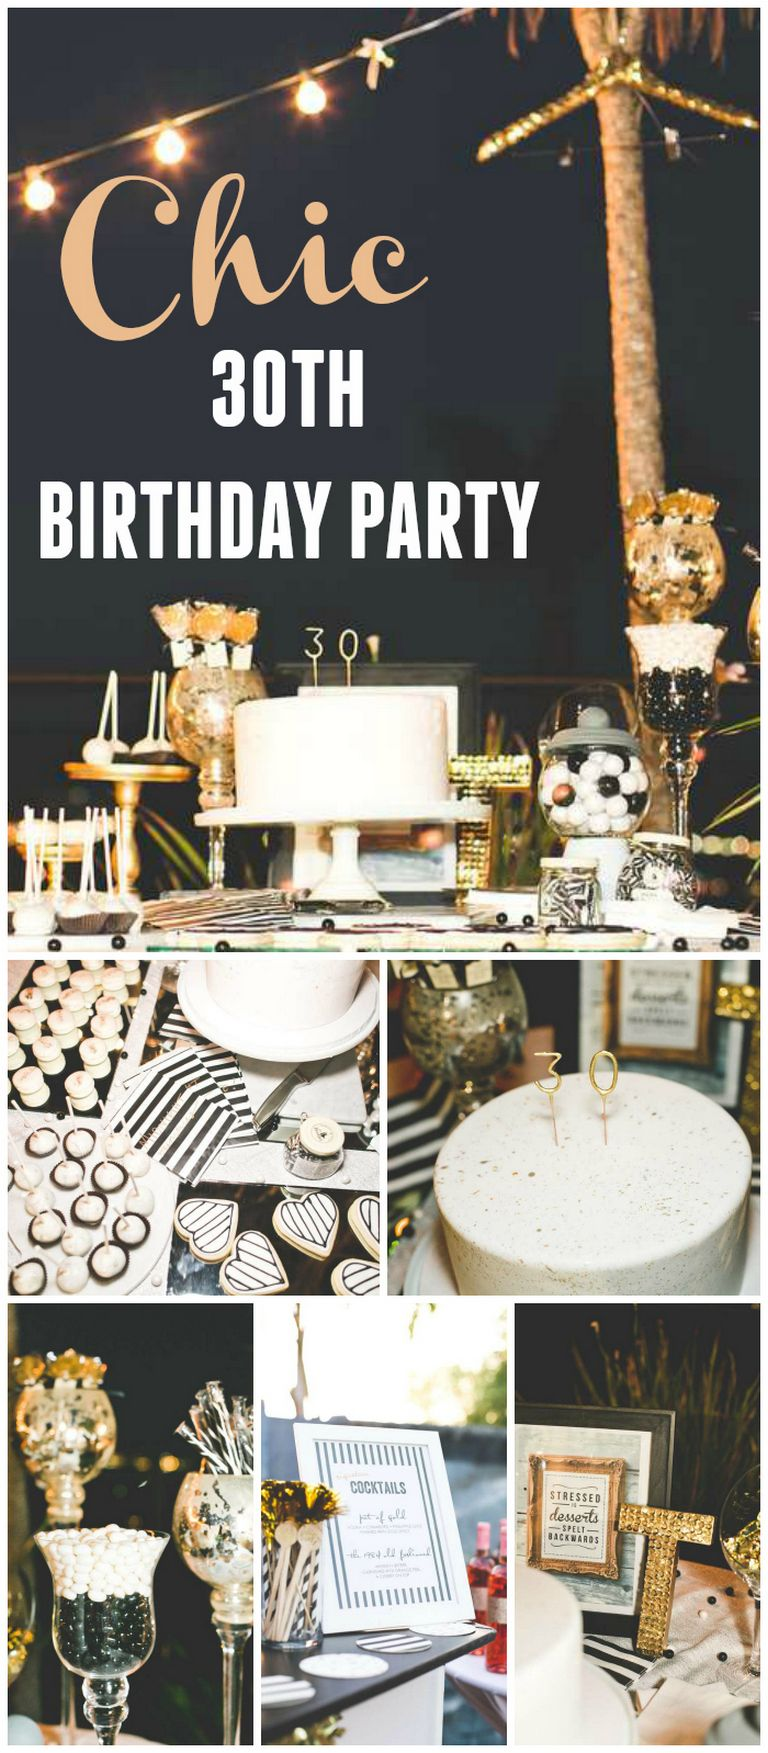 A Birthday May Be The Best Occasion For Organizing A